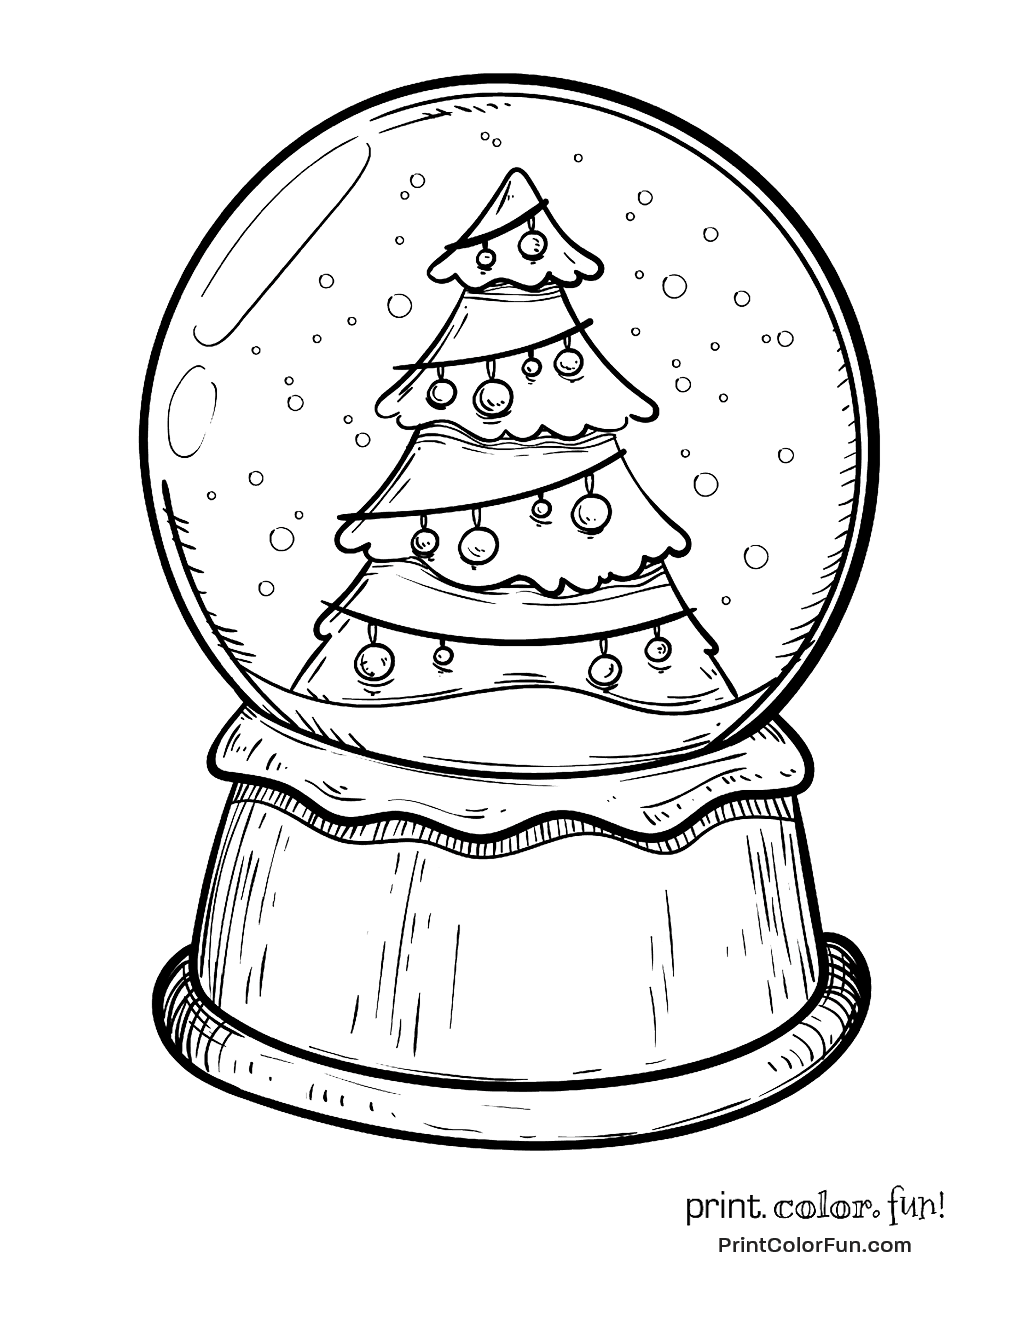 globe coloring page - snow globe with a christmas tree coloring page print